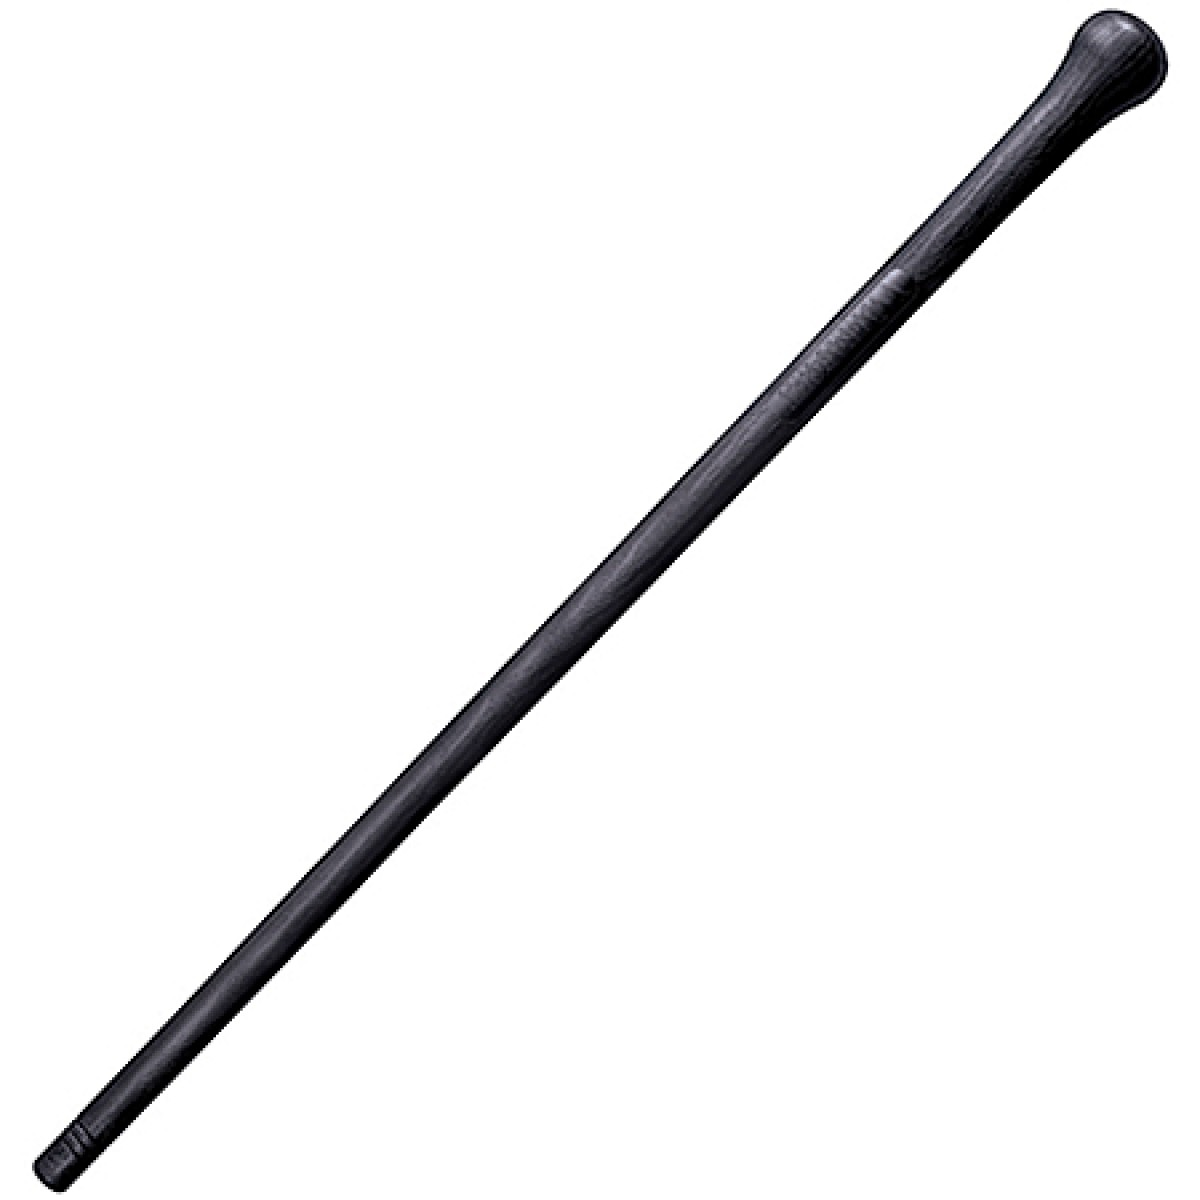 Barringtons Swords Cold Steel Walkabout Stick